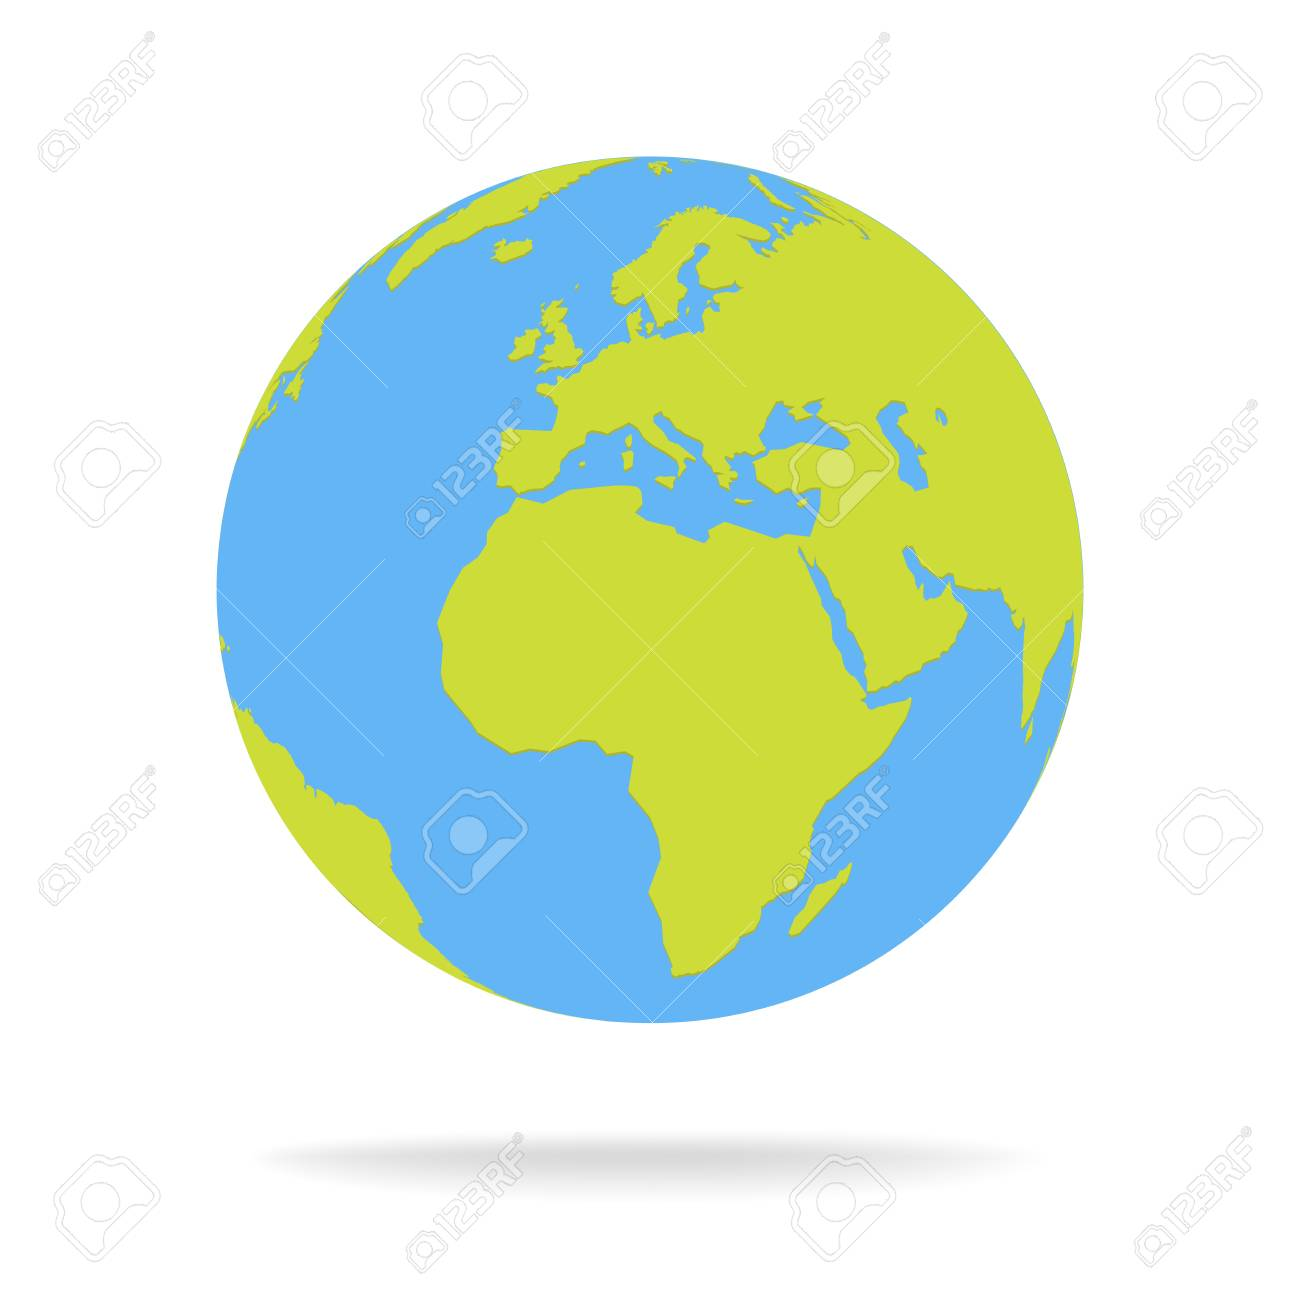 Green And Blue Cartoon World Map Globe Vector Illustration Royalty